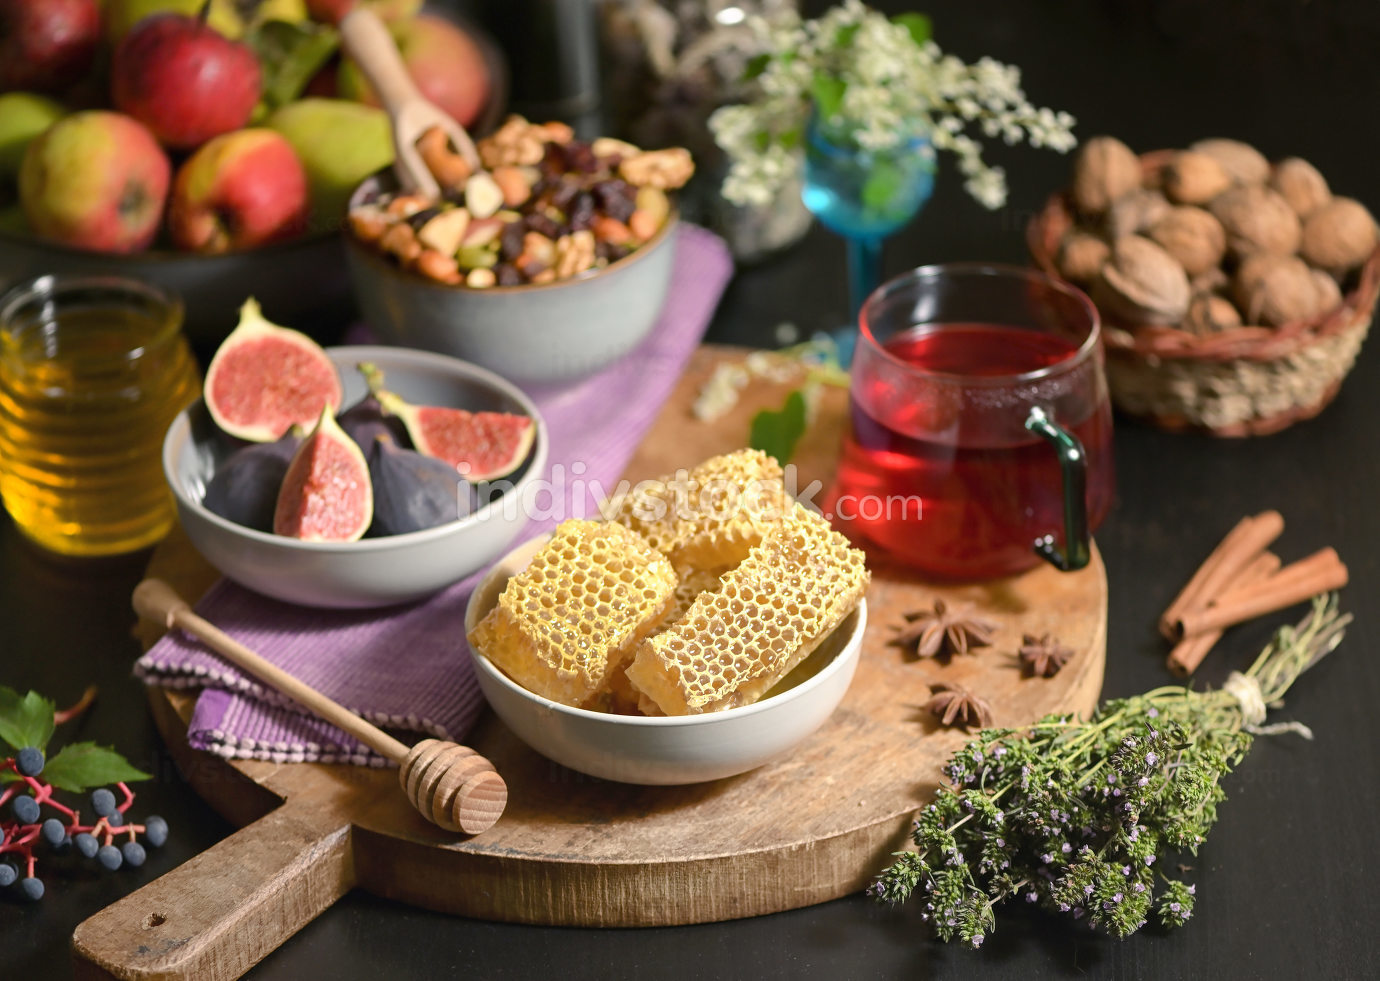 Honey, Honeycomb, Tea, Dried Fruits and Figs on Autumn Table